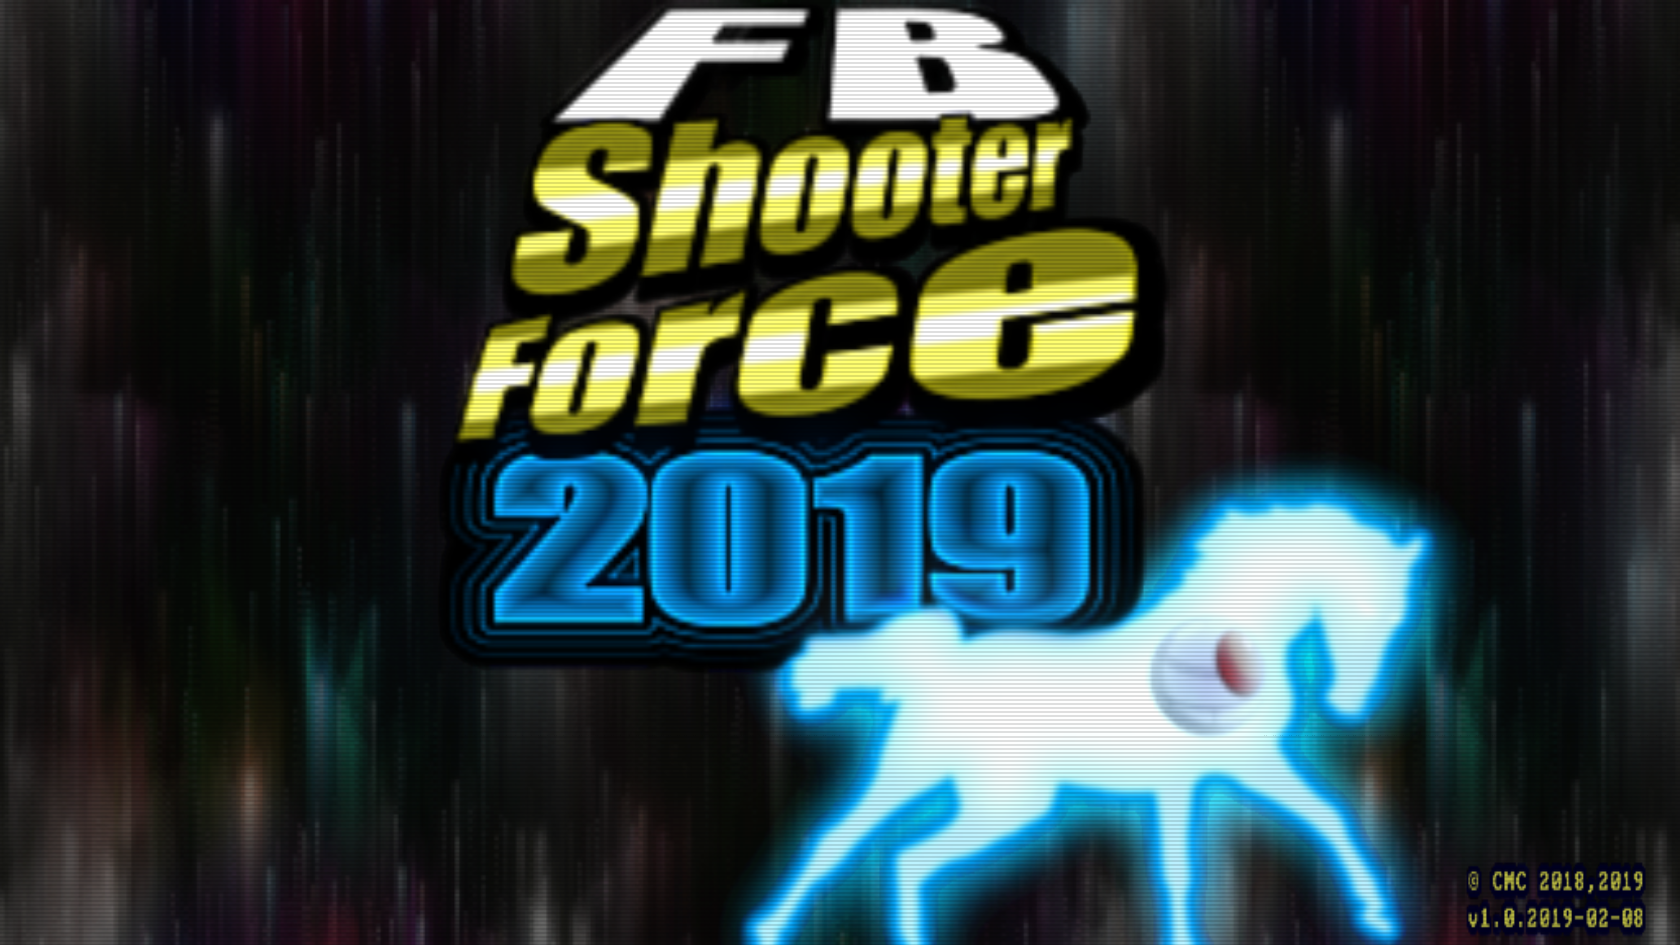 Download web tool or web app FB Shooter Force 2019 to run in Windows online over Linux online